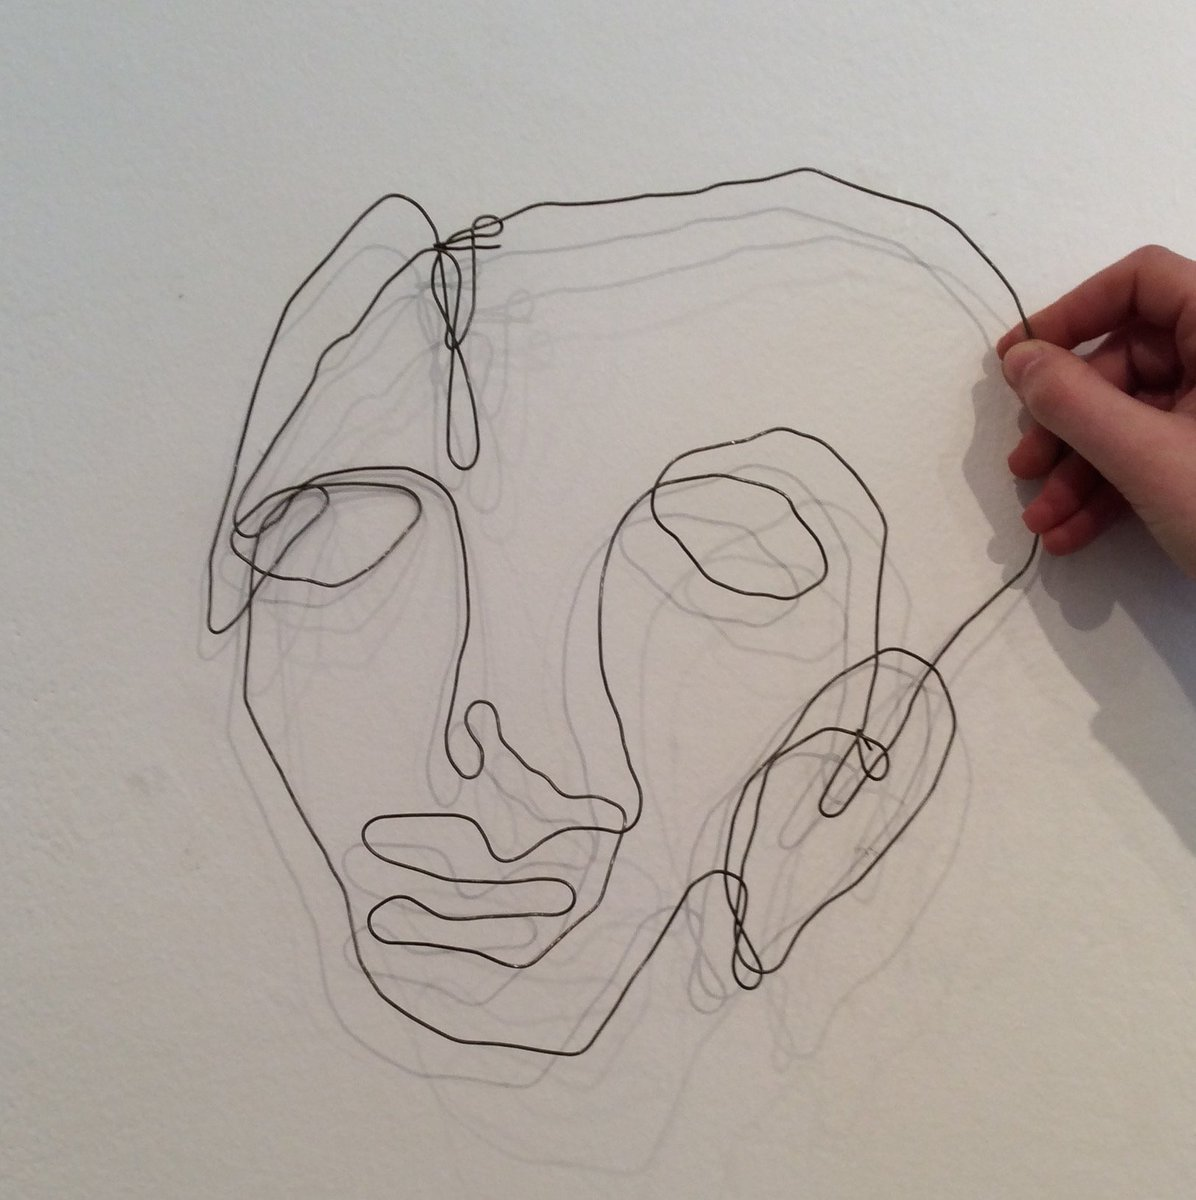 Sculptural Head Studies at Ben Uri this Weds 6.30pm. Explore different drawing techs and materials #drawing #art bk: https://t.co/tNatdNxCb3